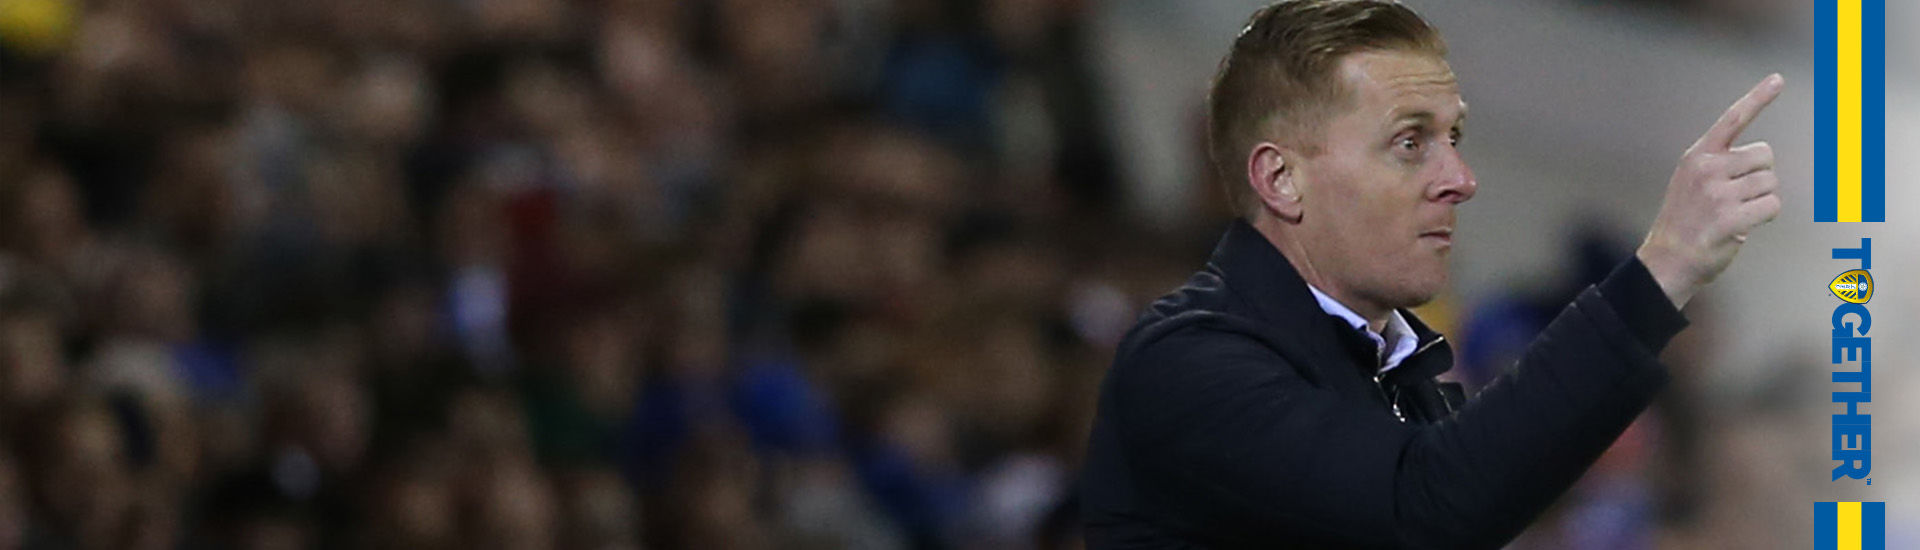 GARRY MONK: I AM VERY PROUD OF THE PLAYERS